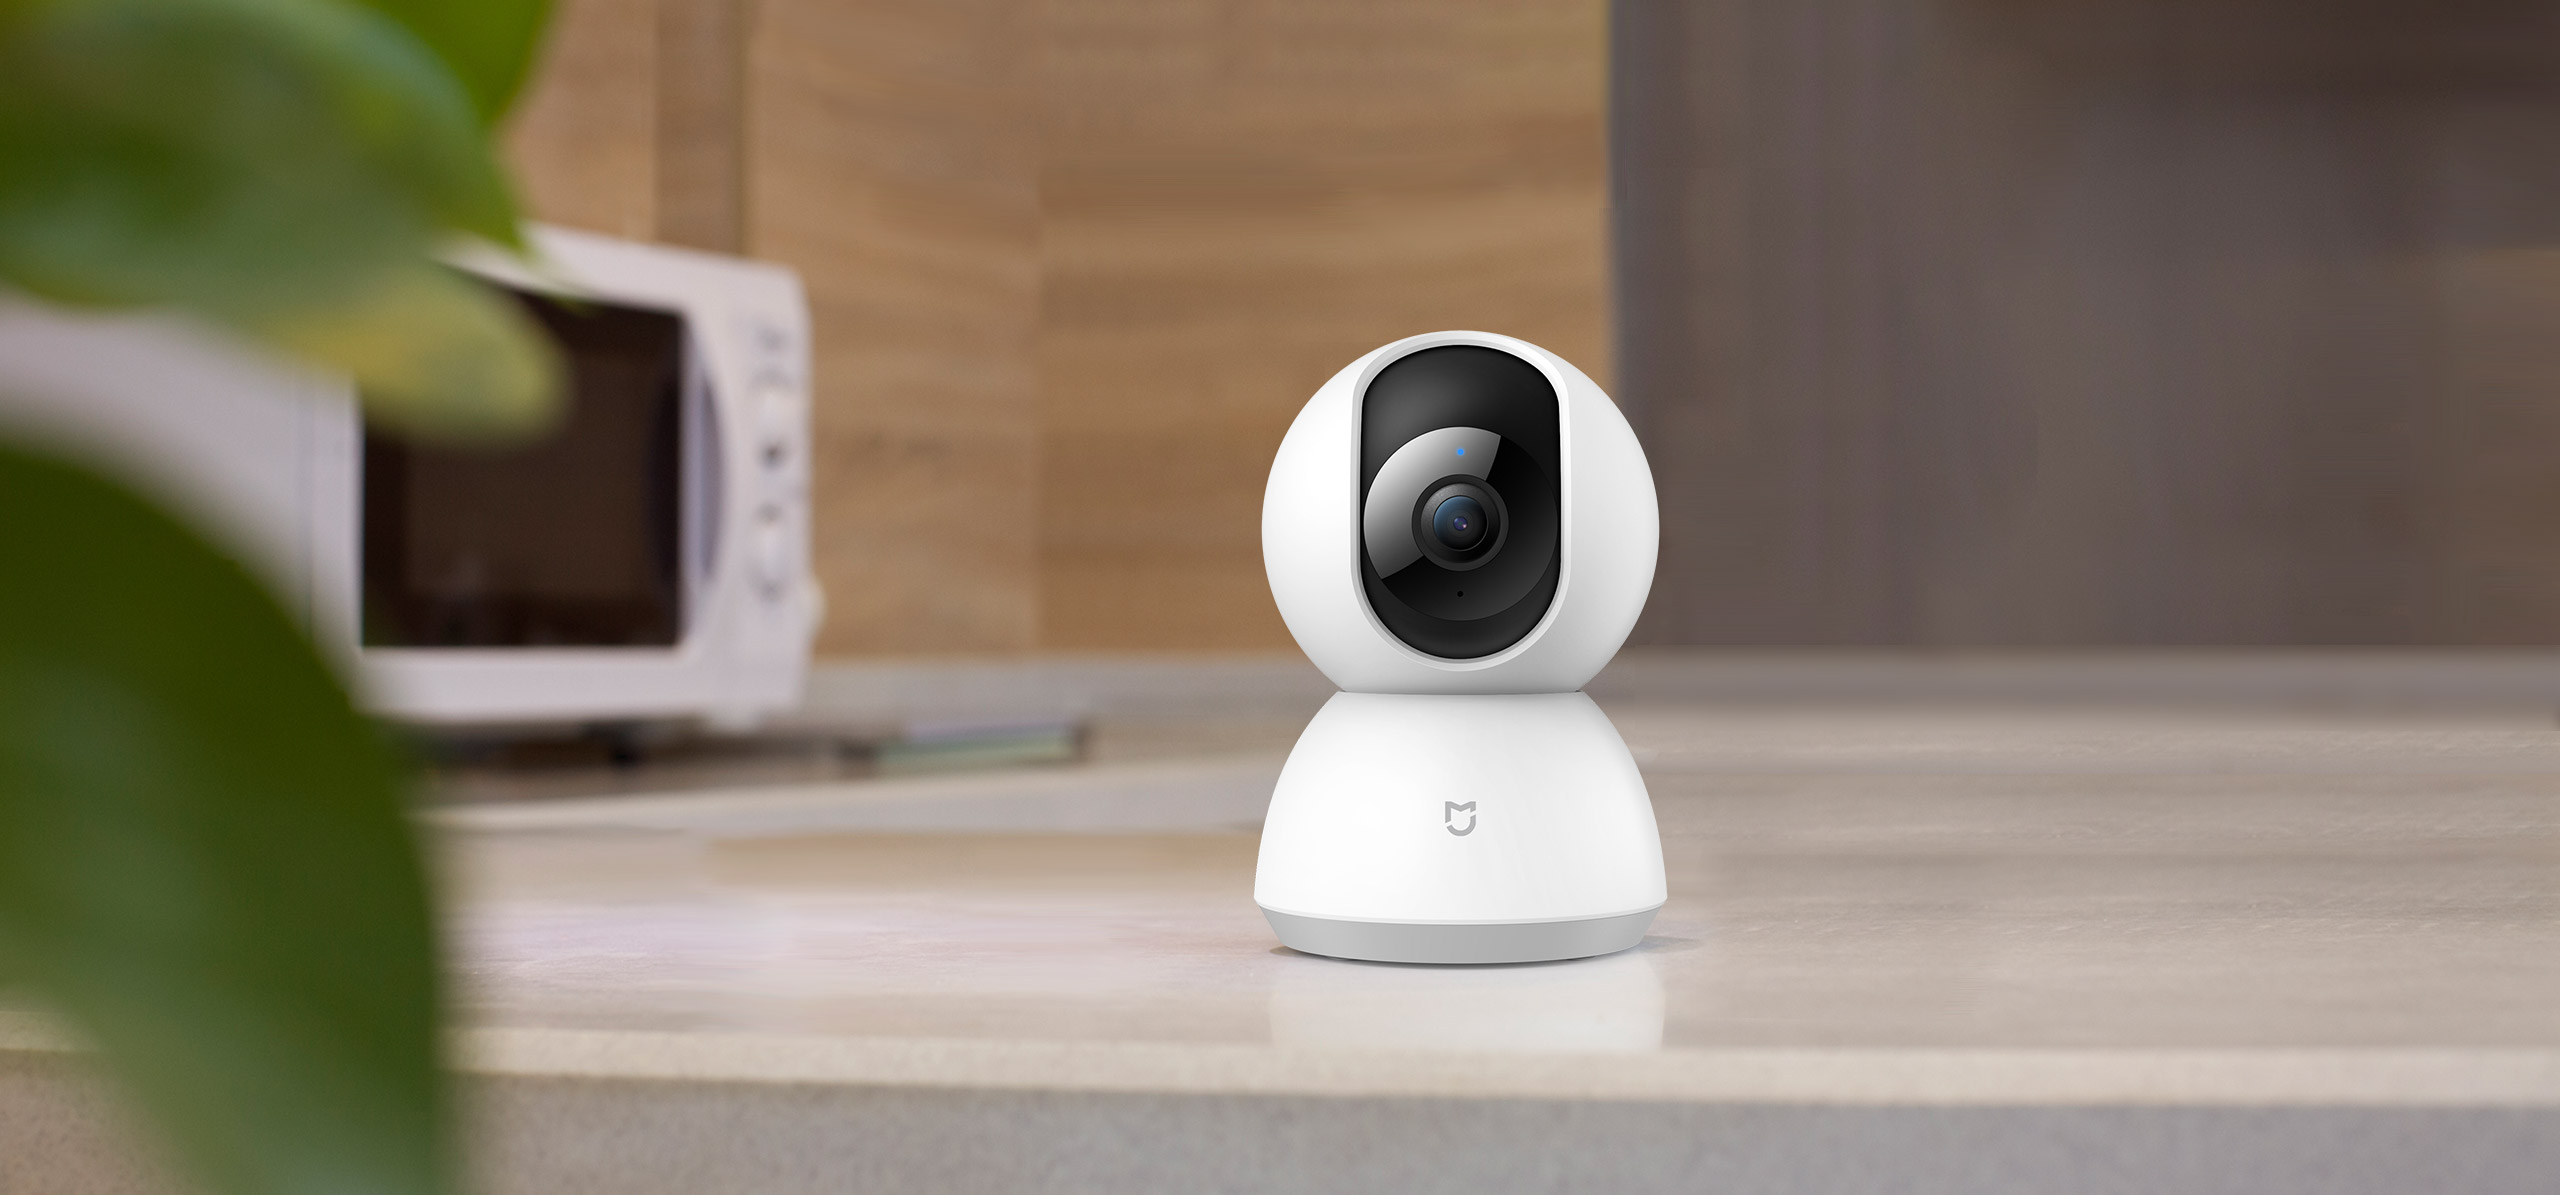 Xiaomi Mi Home Security Camera 360 1080P - Chytrá IP bezpecnostni kamera 6